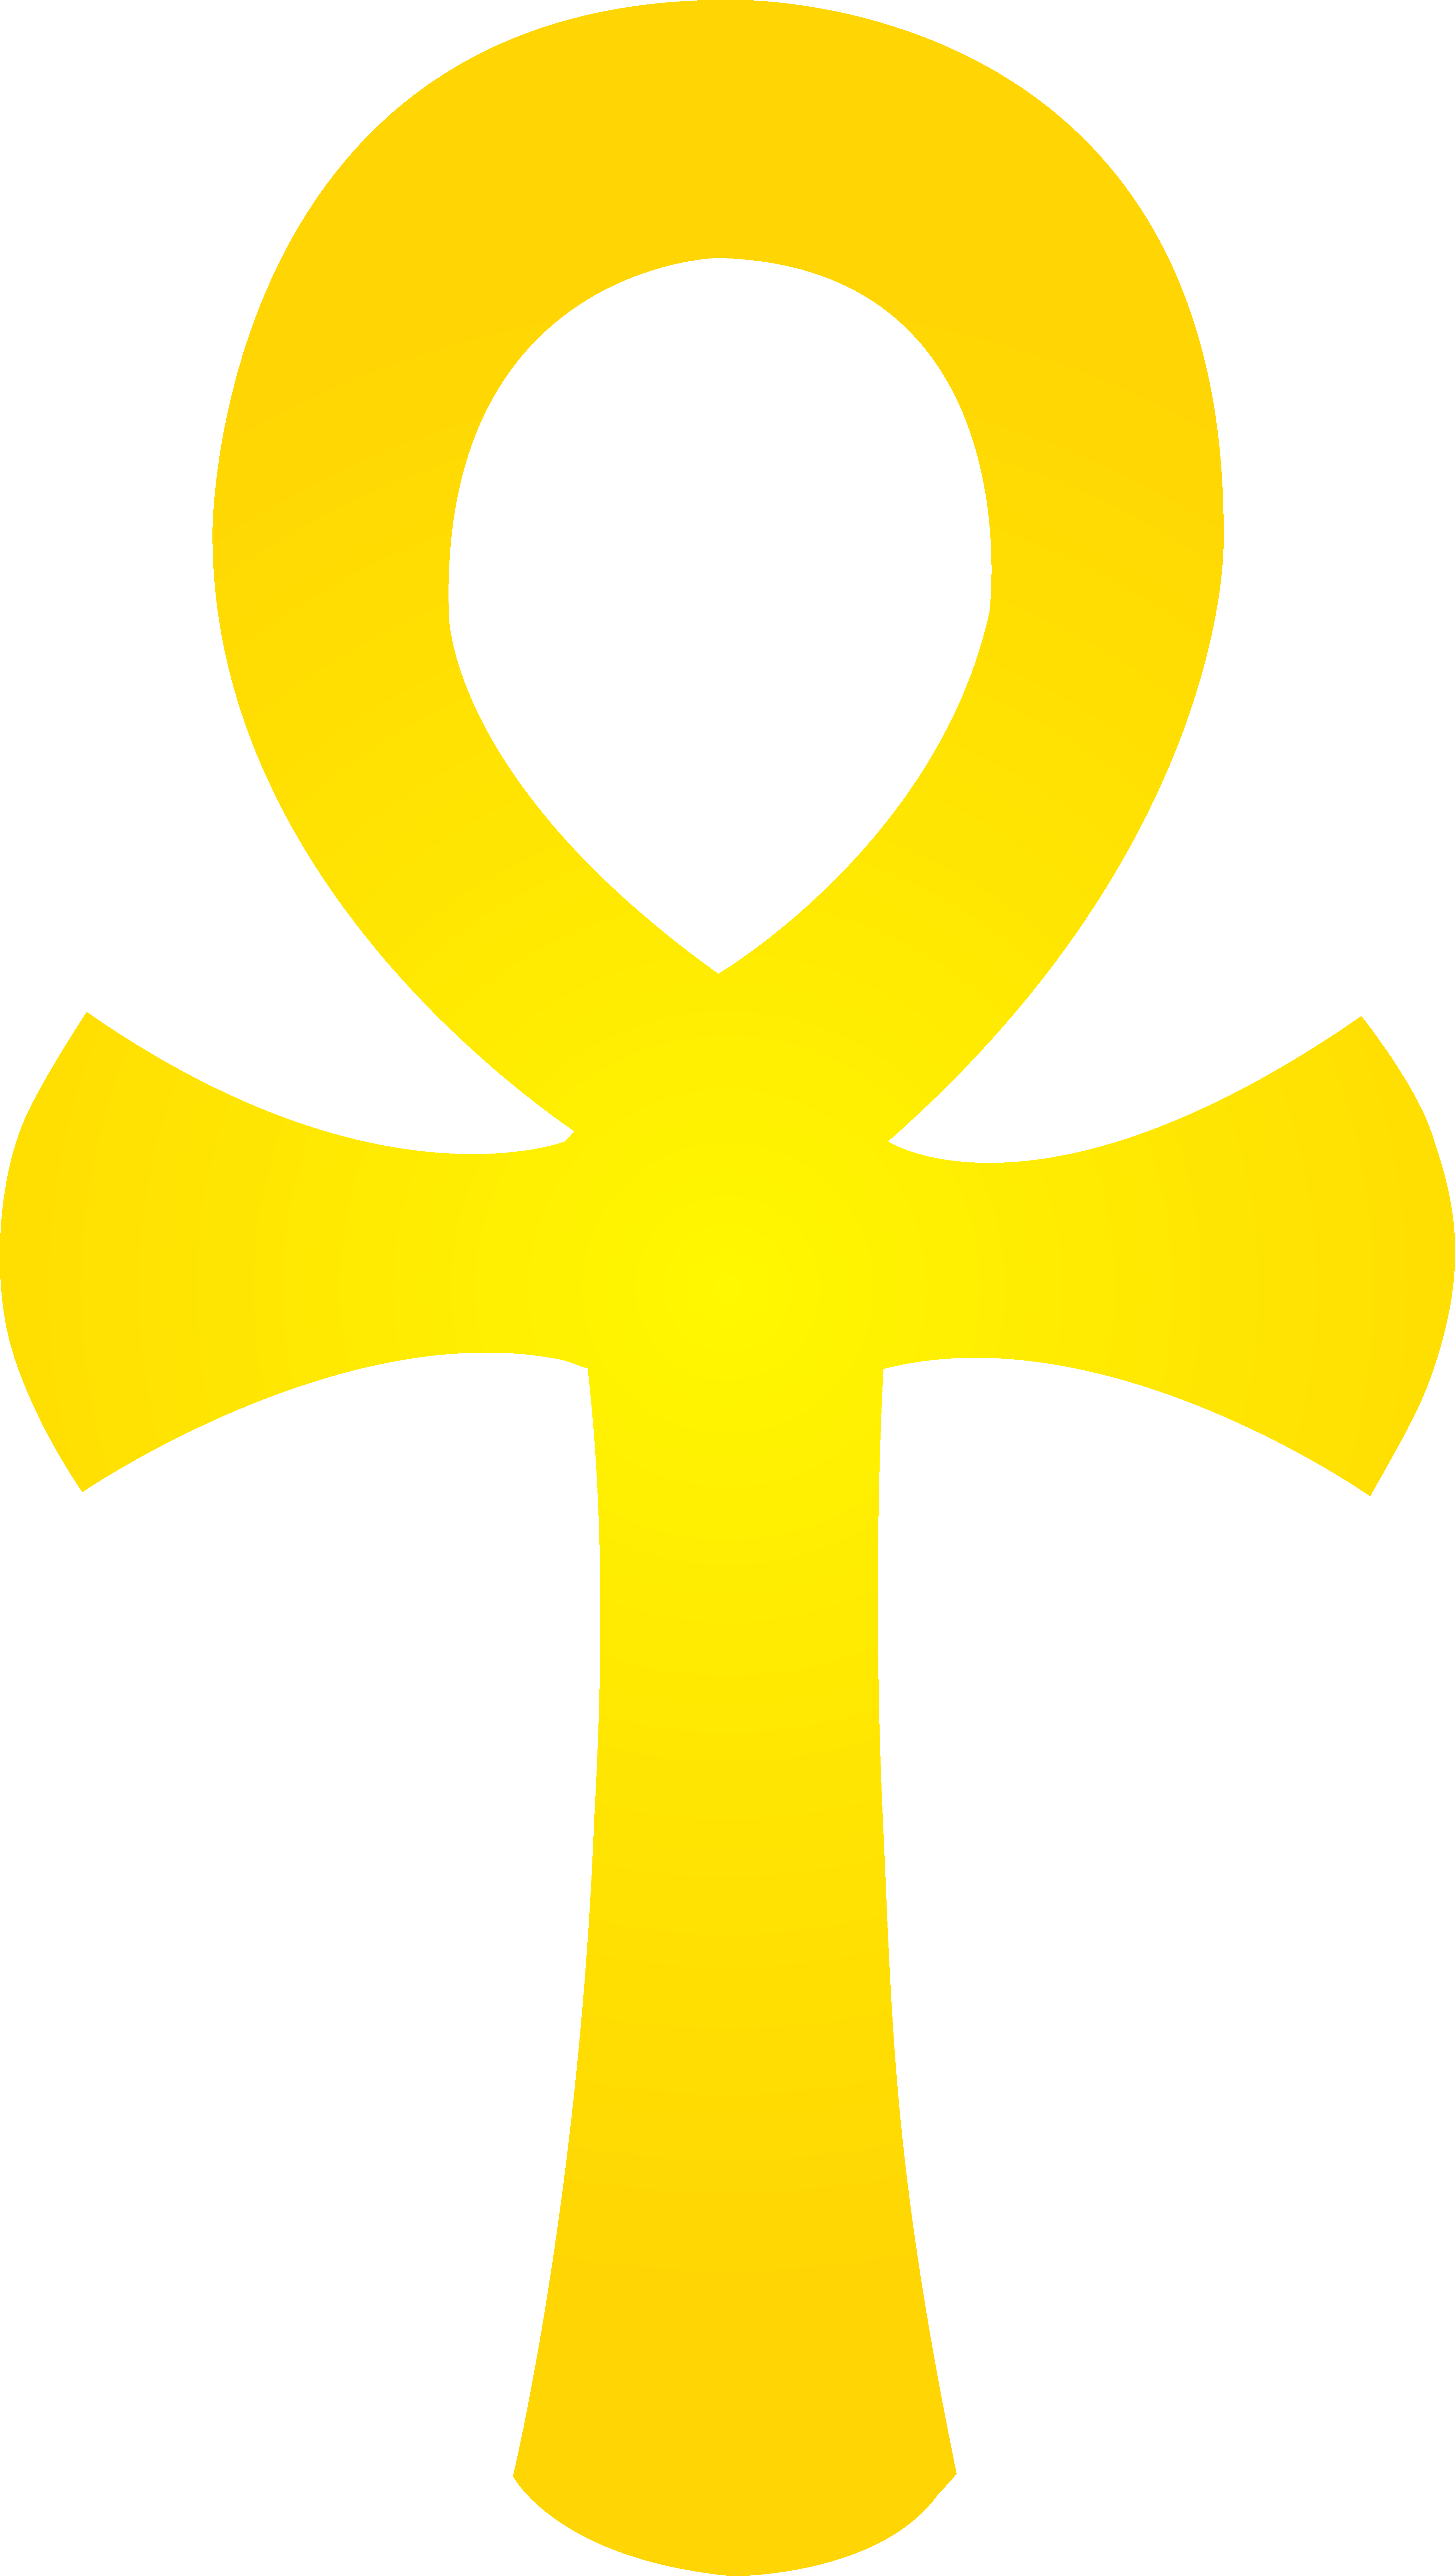 Free Ankh Clipart, Download Free Clip Art, Free Clip Art on.